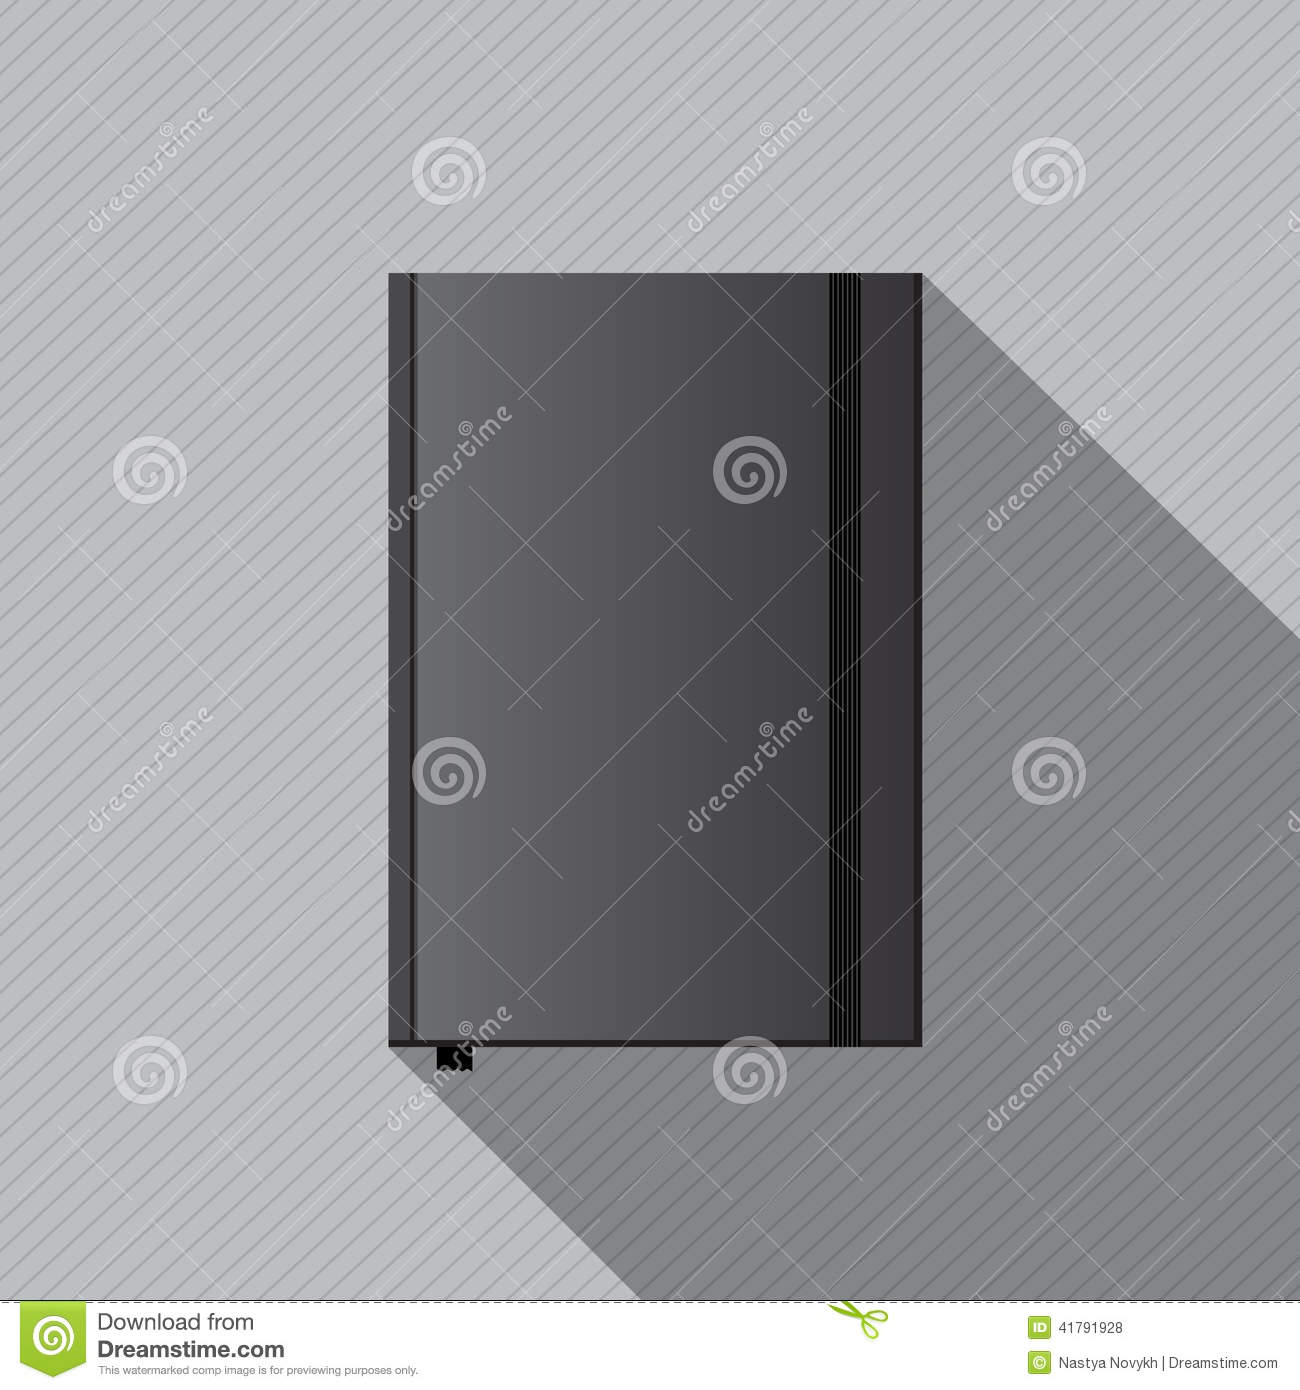 Blank Notebook Cover Template Stock Vector - Image: 41791928